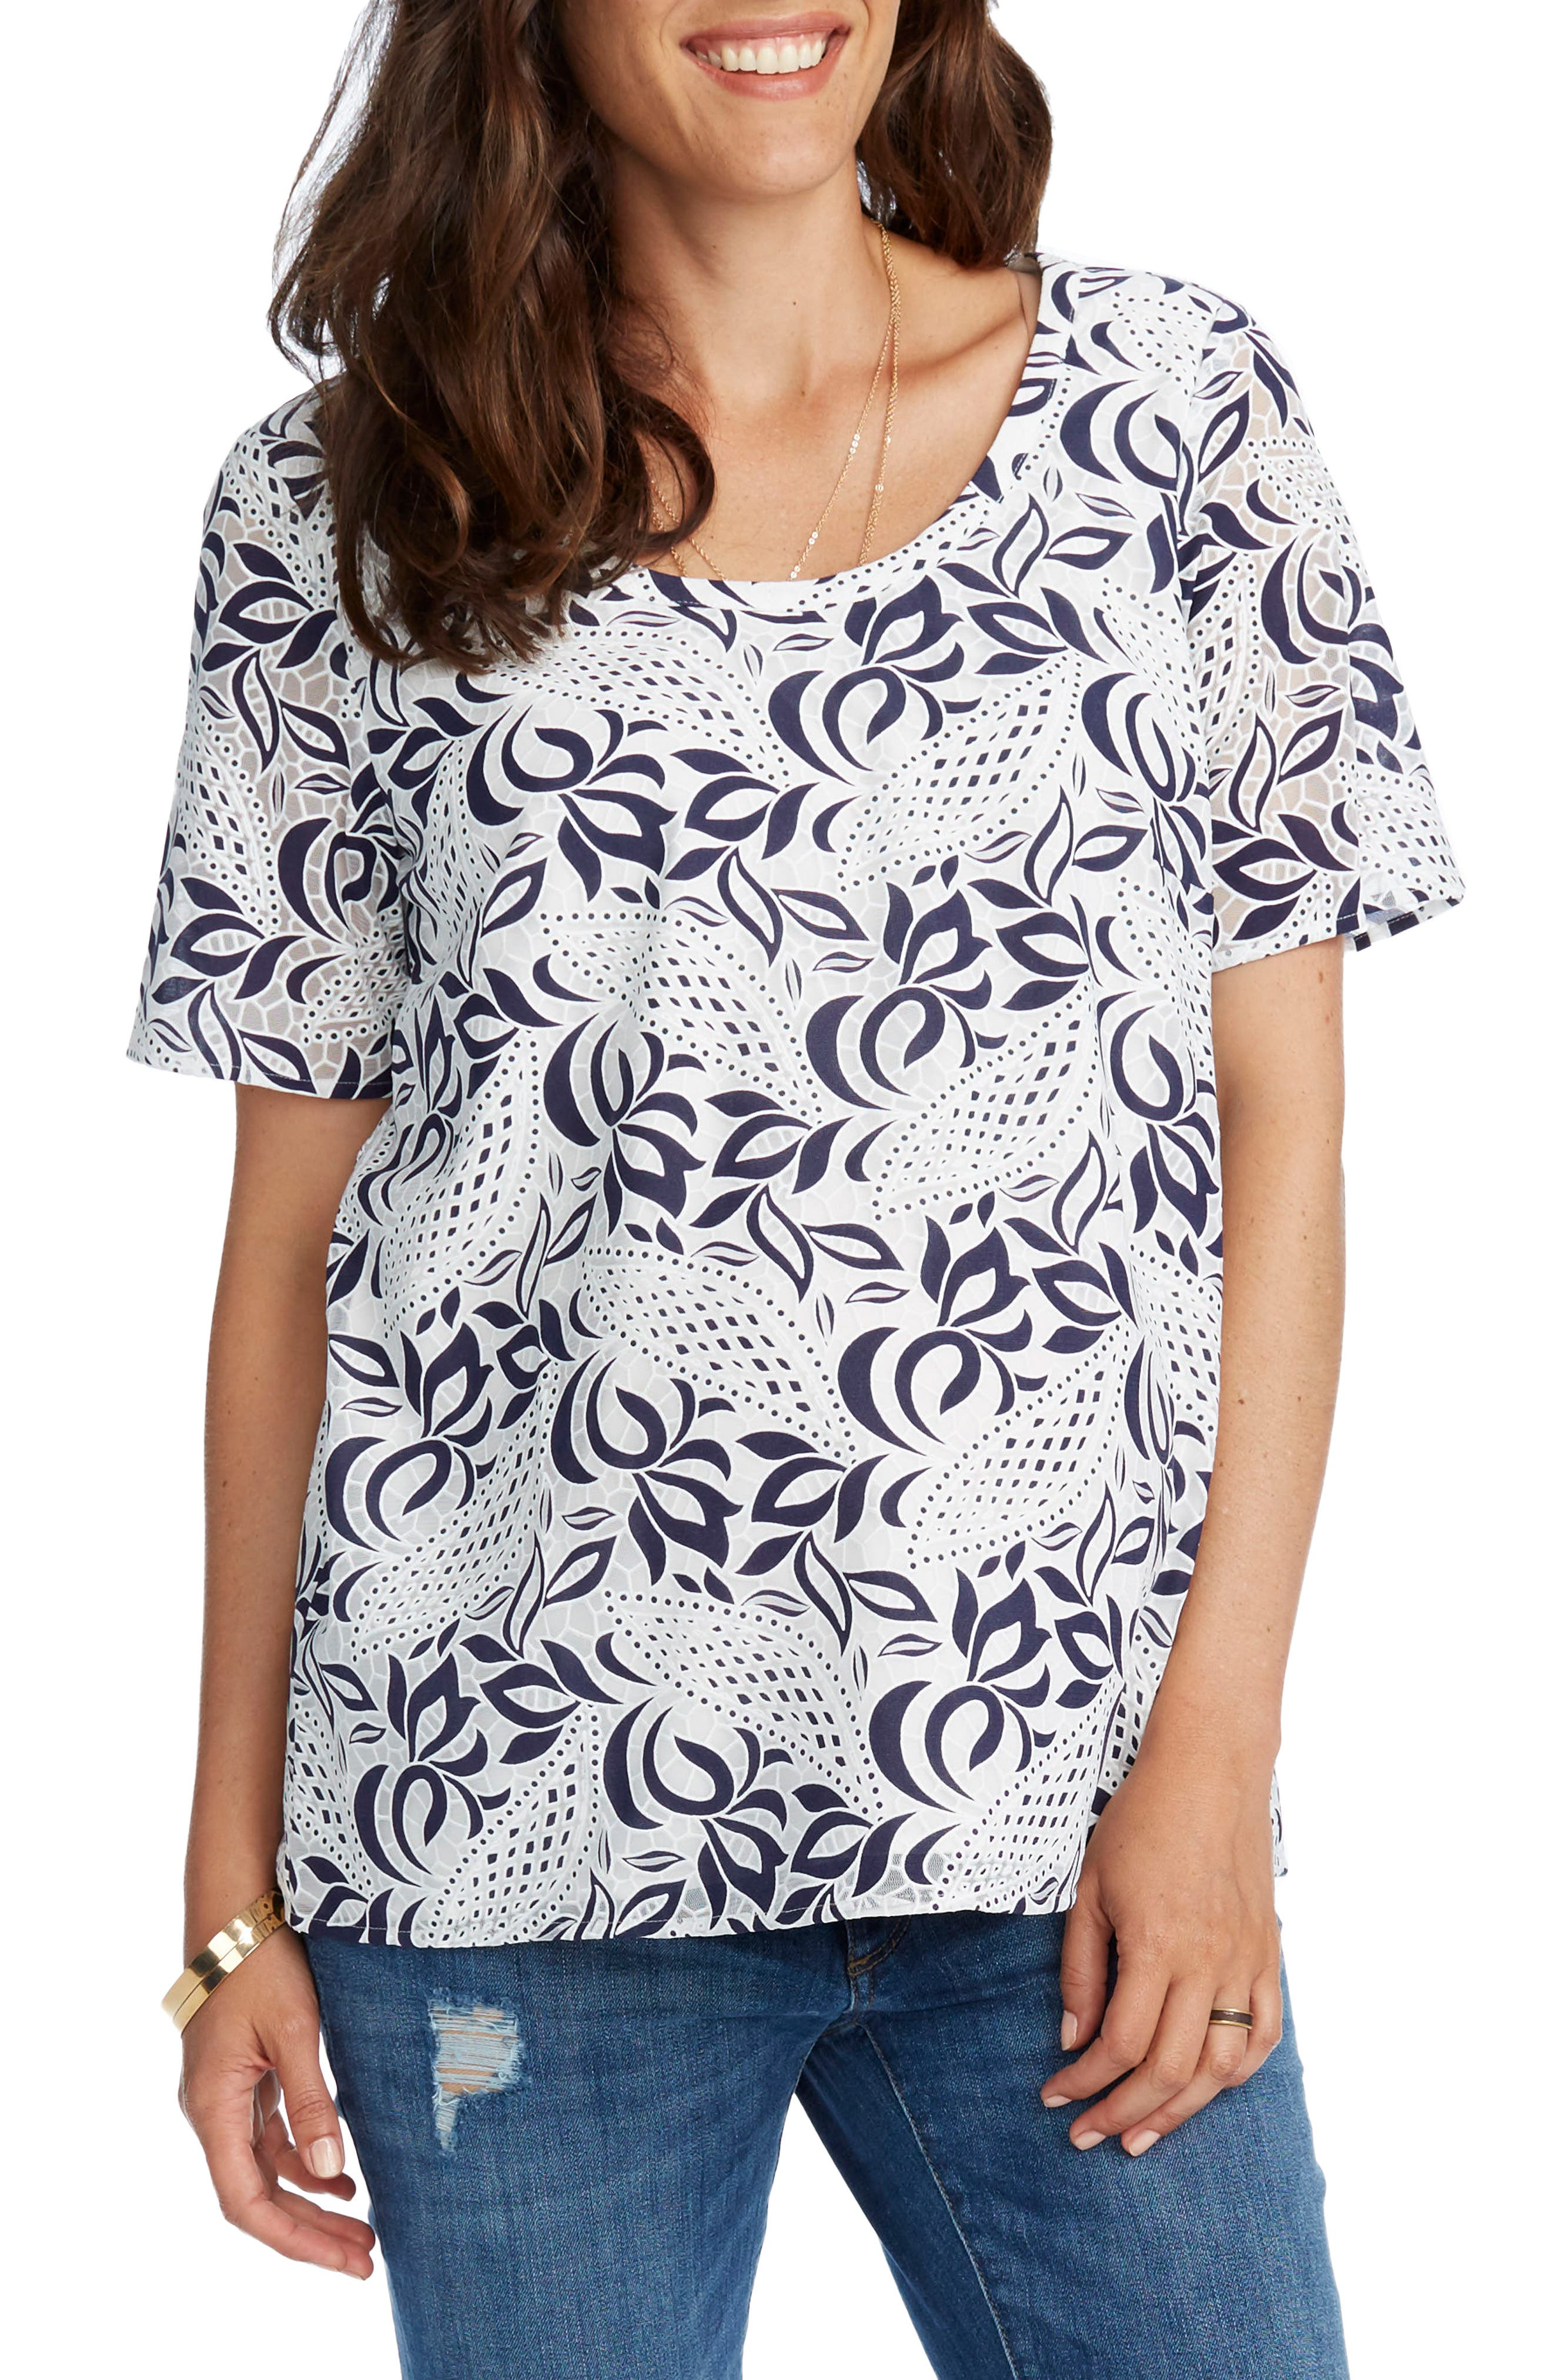 'Ava' Lace Maternity Top,                             Alternate thumbnail 2, color,                             NAVY/ WHITE